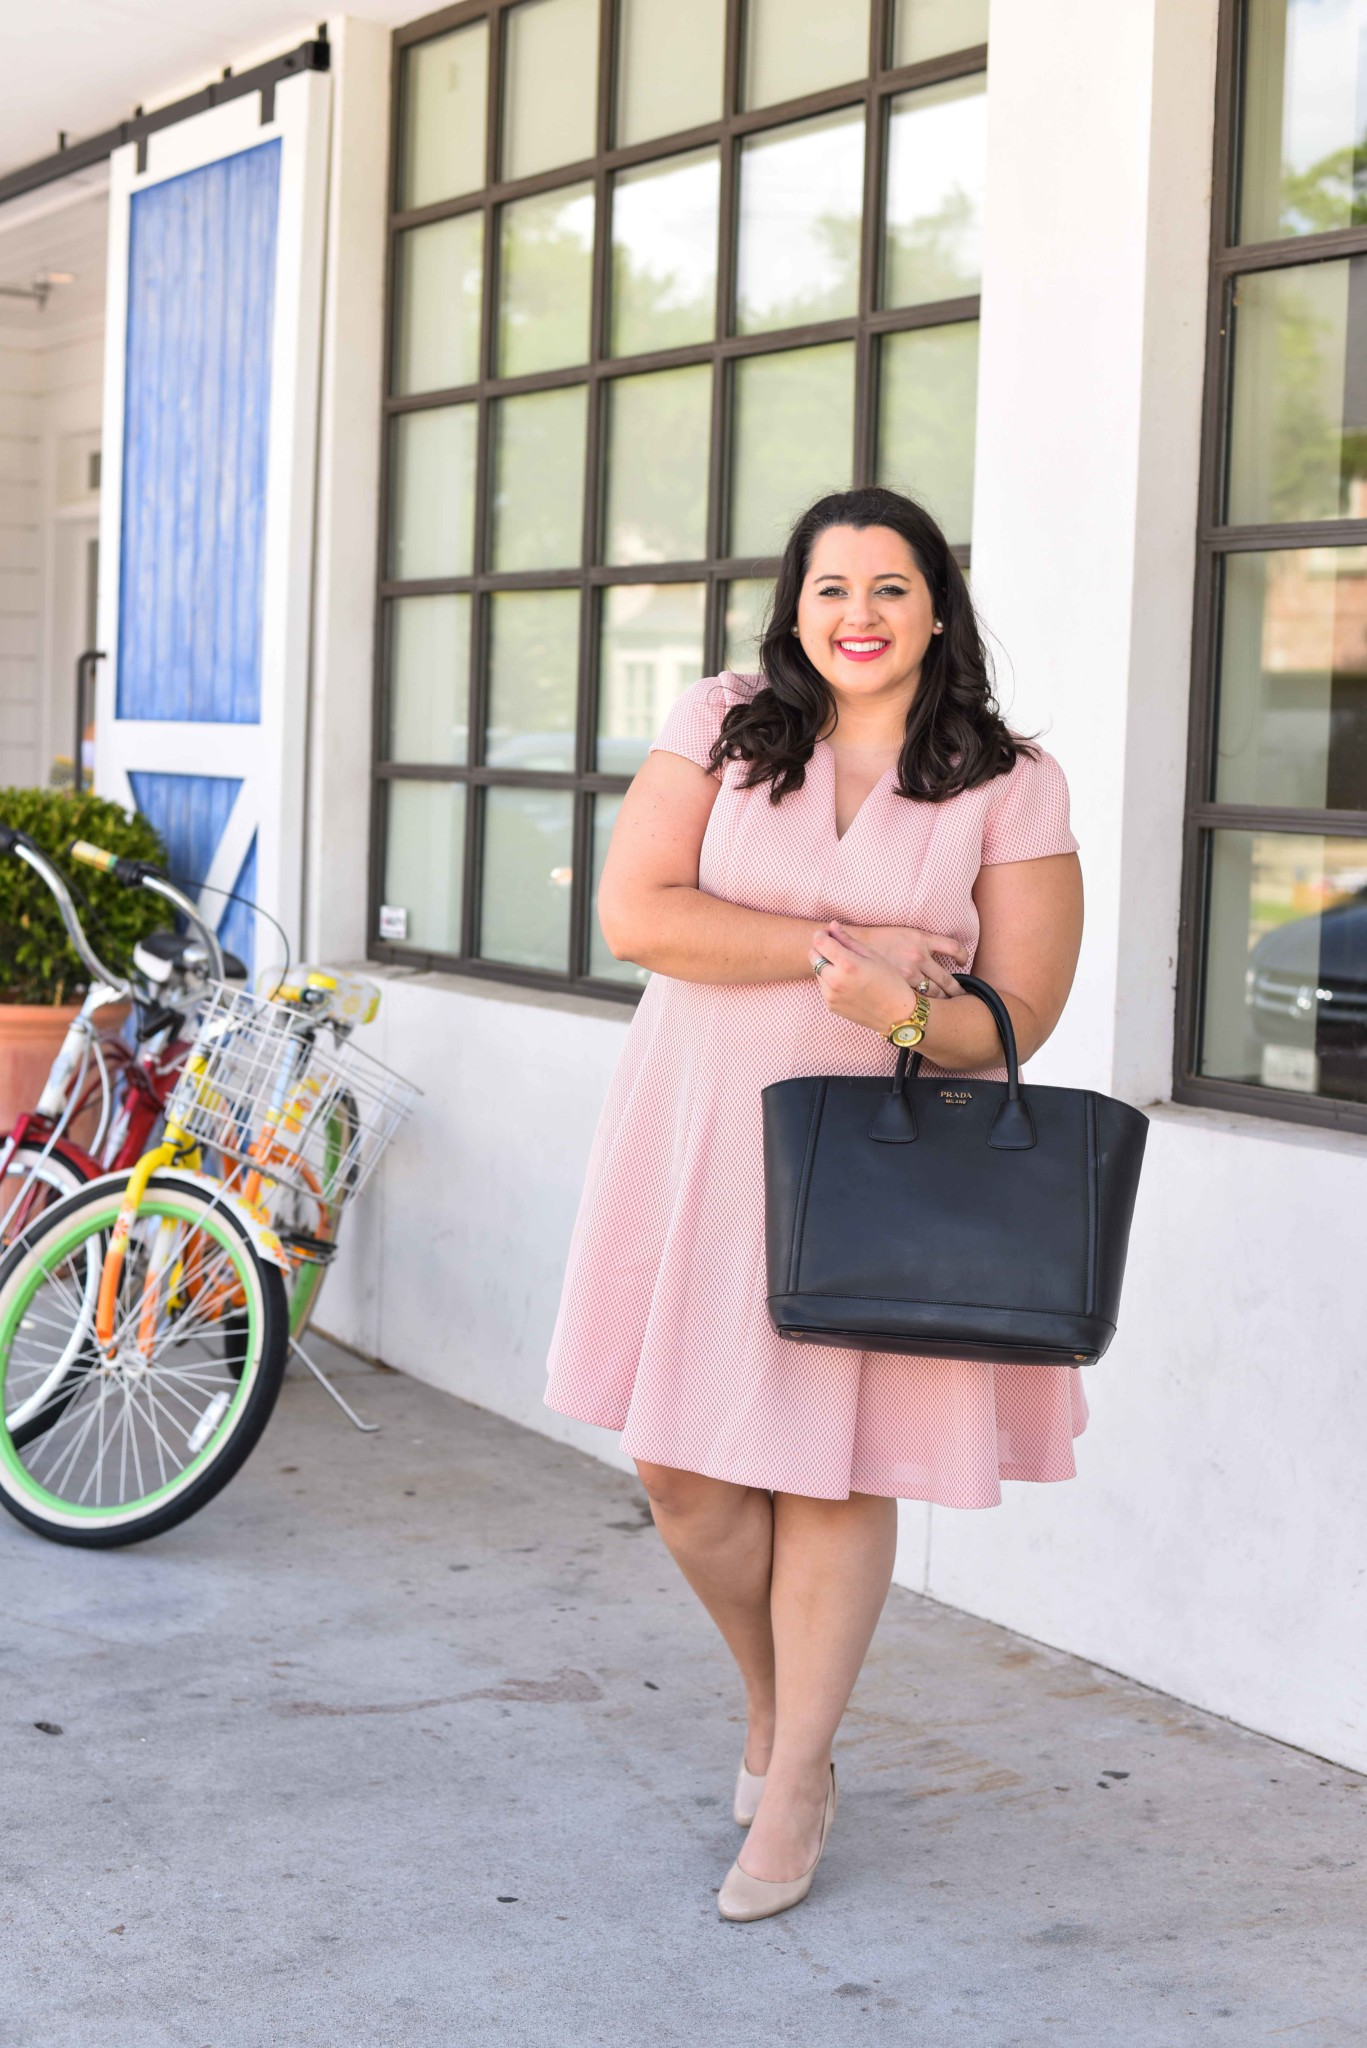 Finding the perfect Mother's Day gift can be tough, especially when it's last minute. I'm sharing 5 last minute Mother's Day gifts that will be sure to put a smile on your Mom's face. I'm also sharing the perfect Mother's Day brunch outfit. Curvy style, plus size style, fashion, Mother's Day outfit